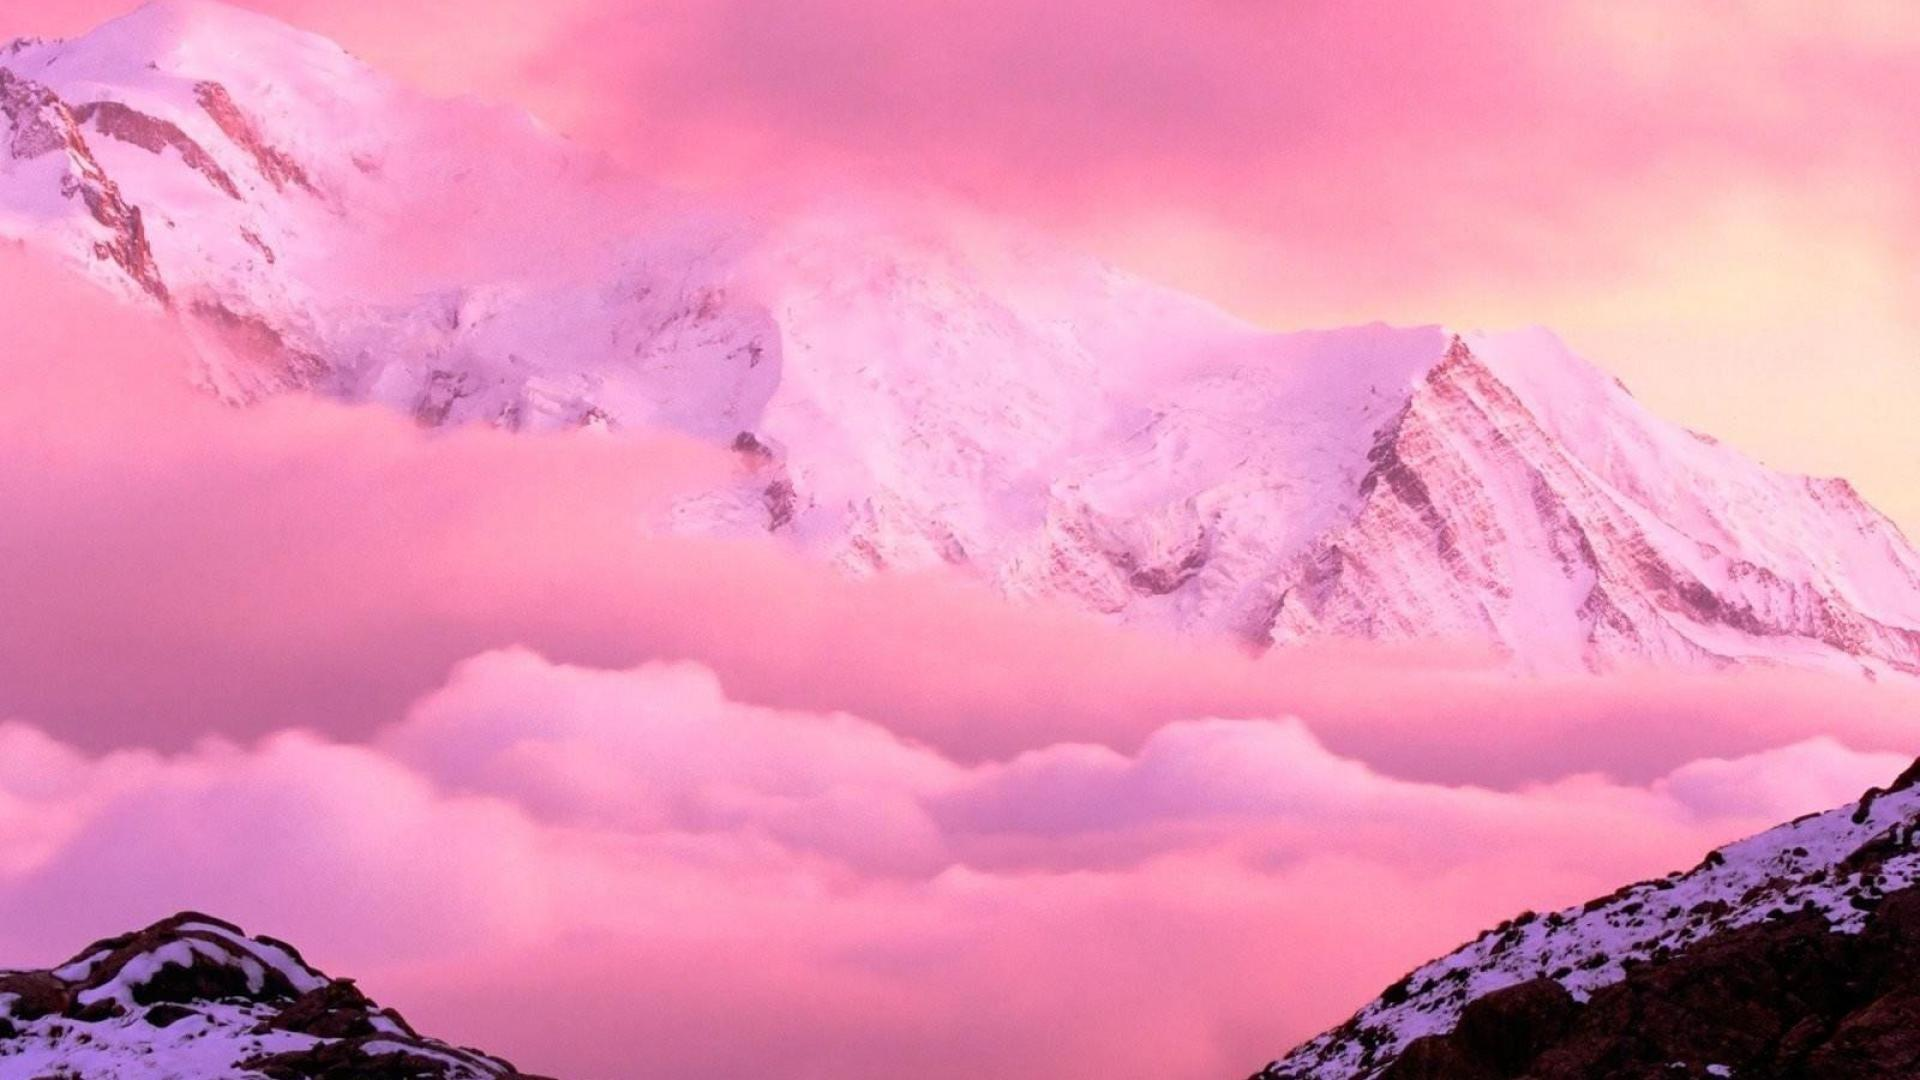 Pink Aesthetic Landscape Wallpapers Wallpaper Cave